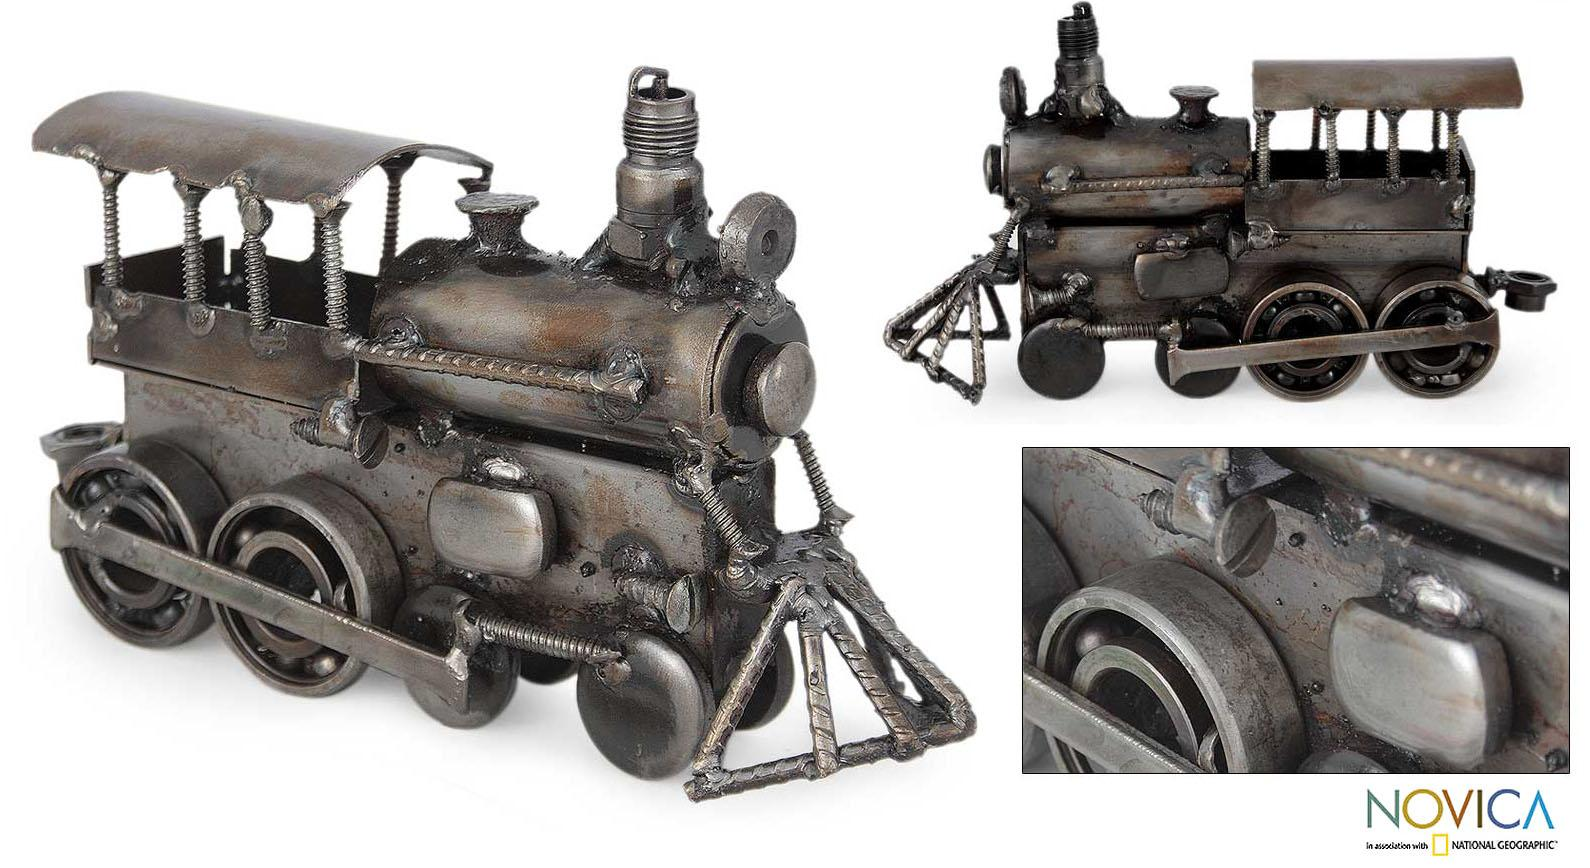 Handmade Iron 'Rustic Steam Engine' Sculpture (Mexico)